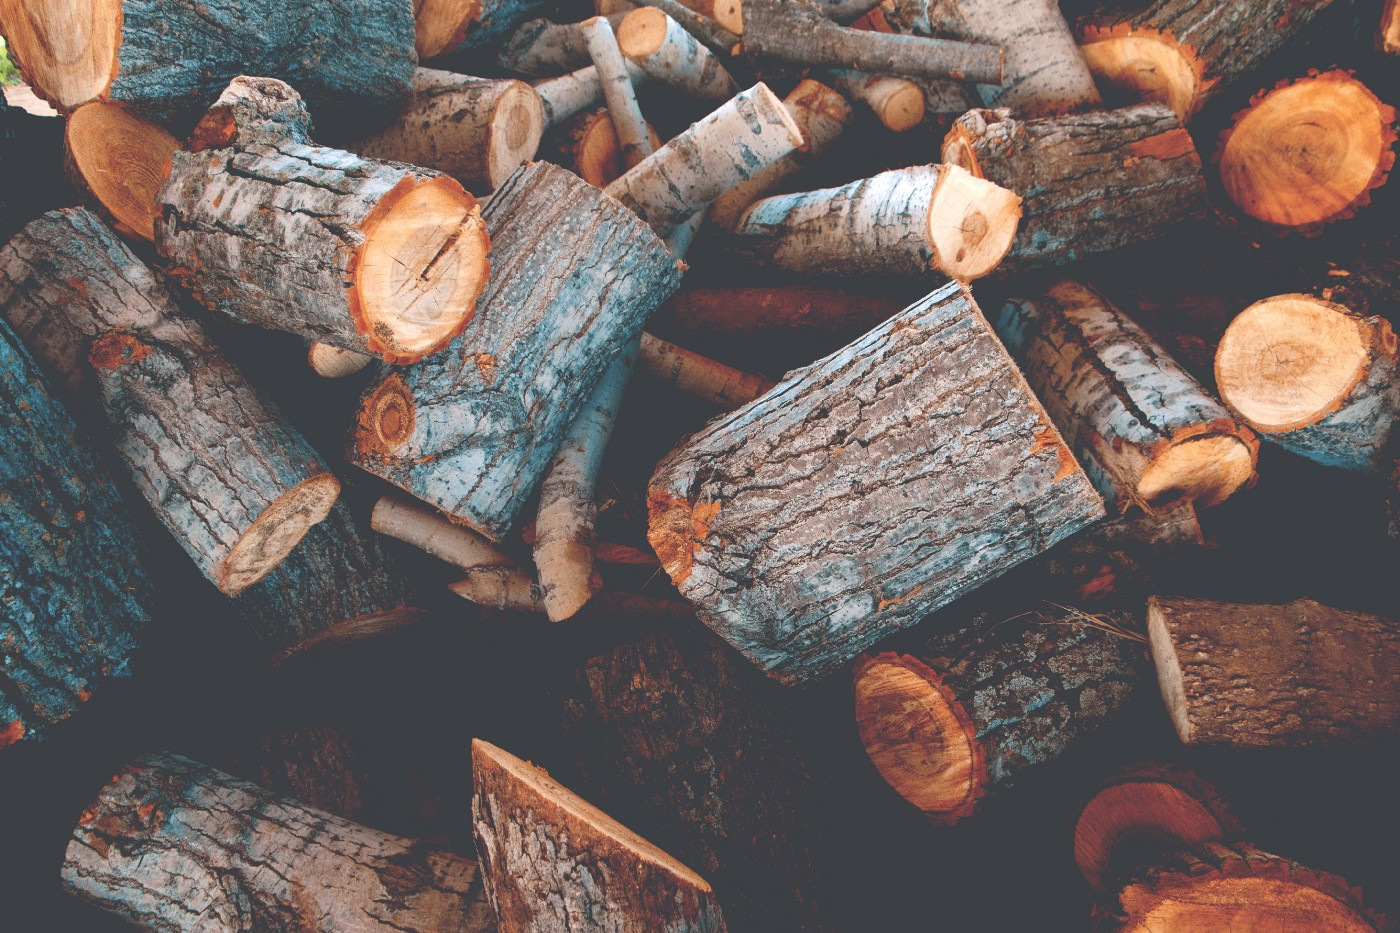 Too many logs to sort out